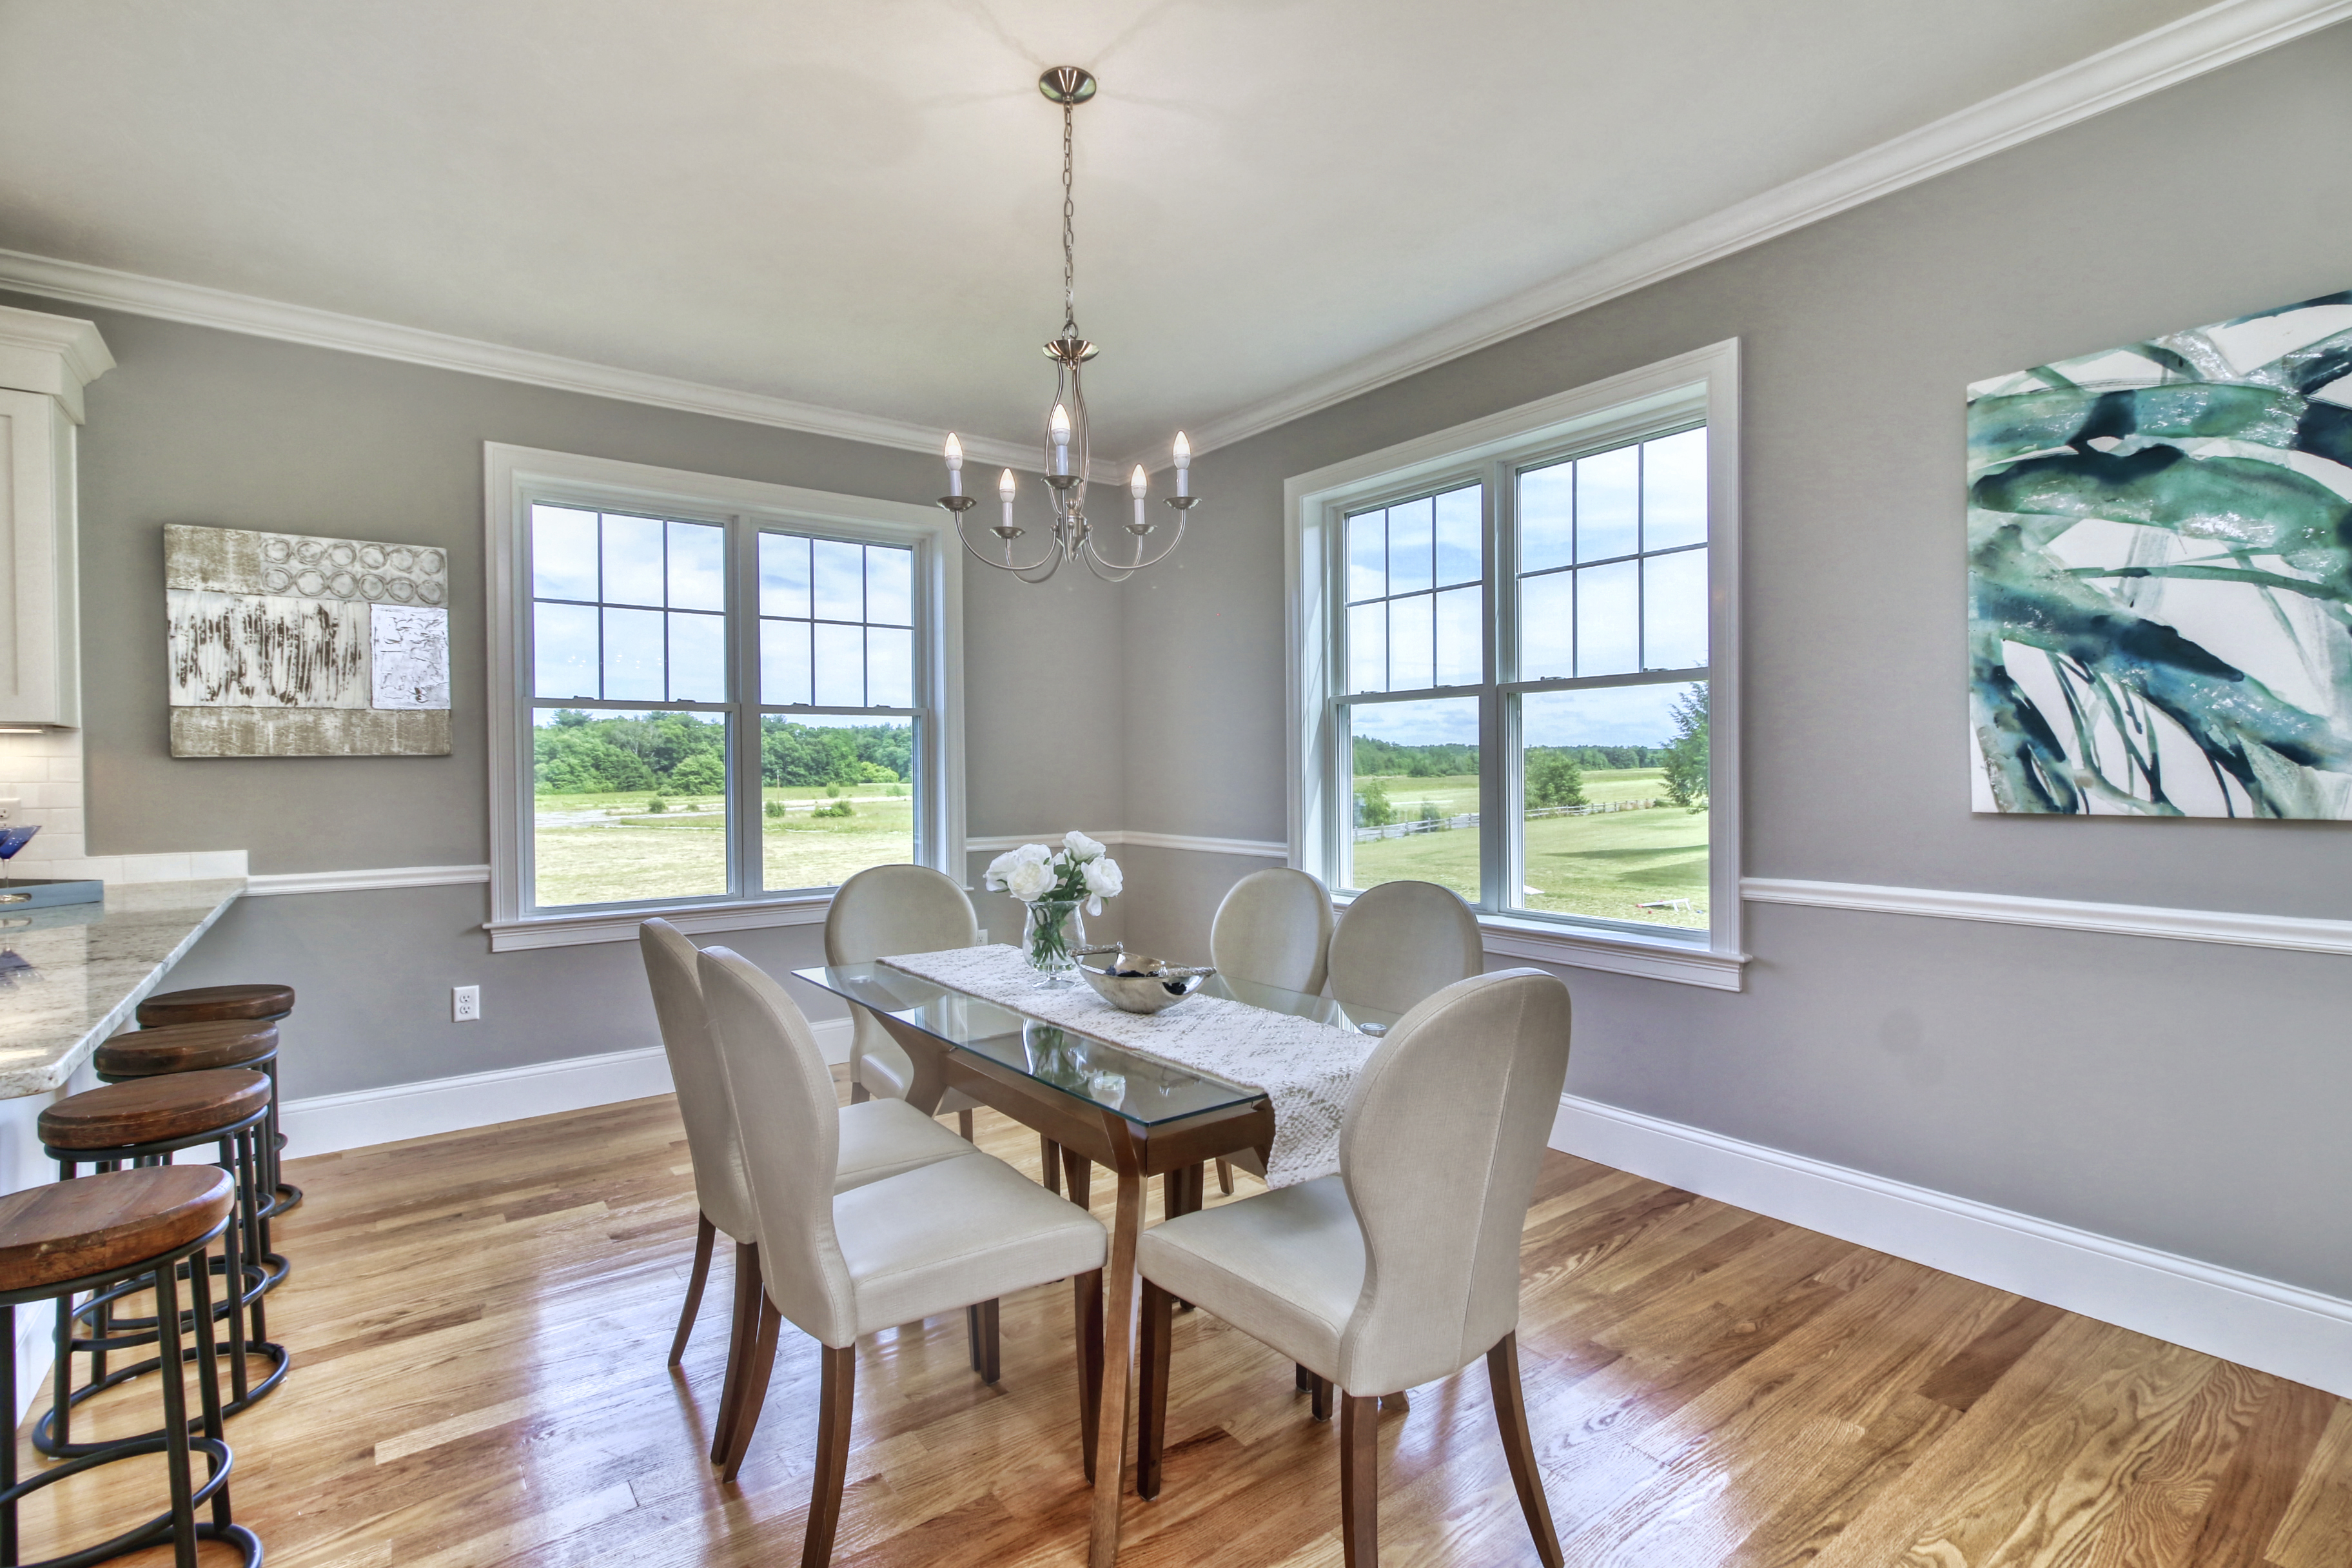 Pastel grey dining room with a dining set and a counter top with barstools